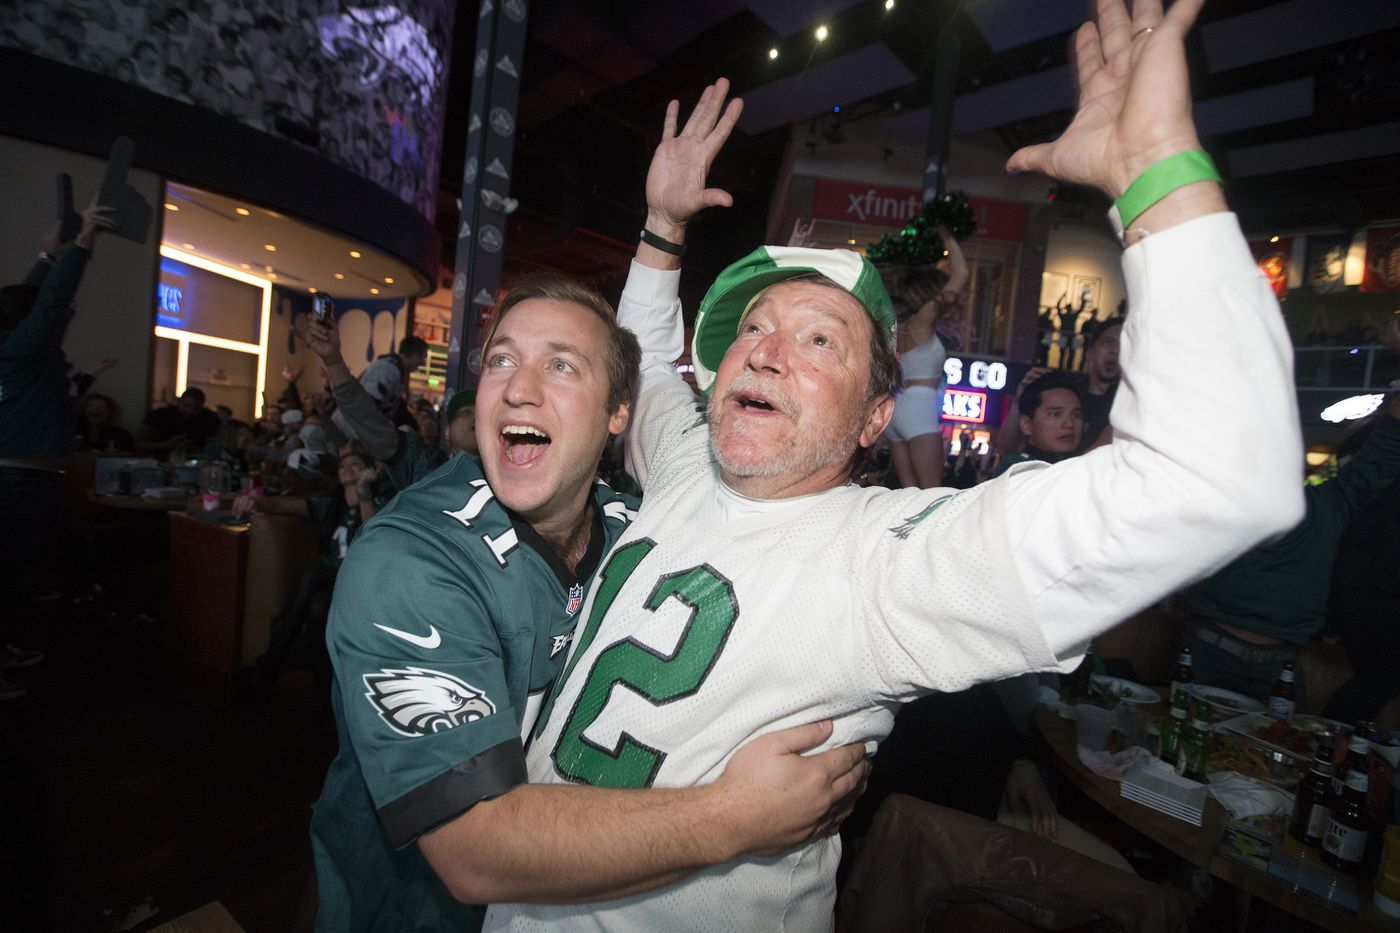 Father's Day is coming and the Eagles are Super Bowl champs. Does that change things for you, like it does me?